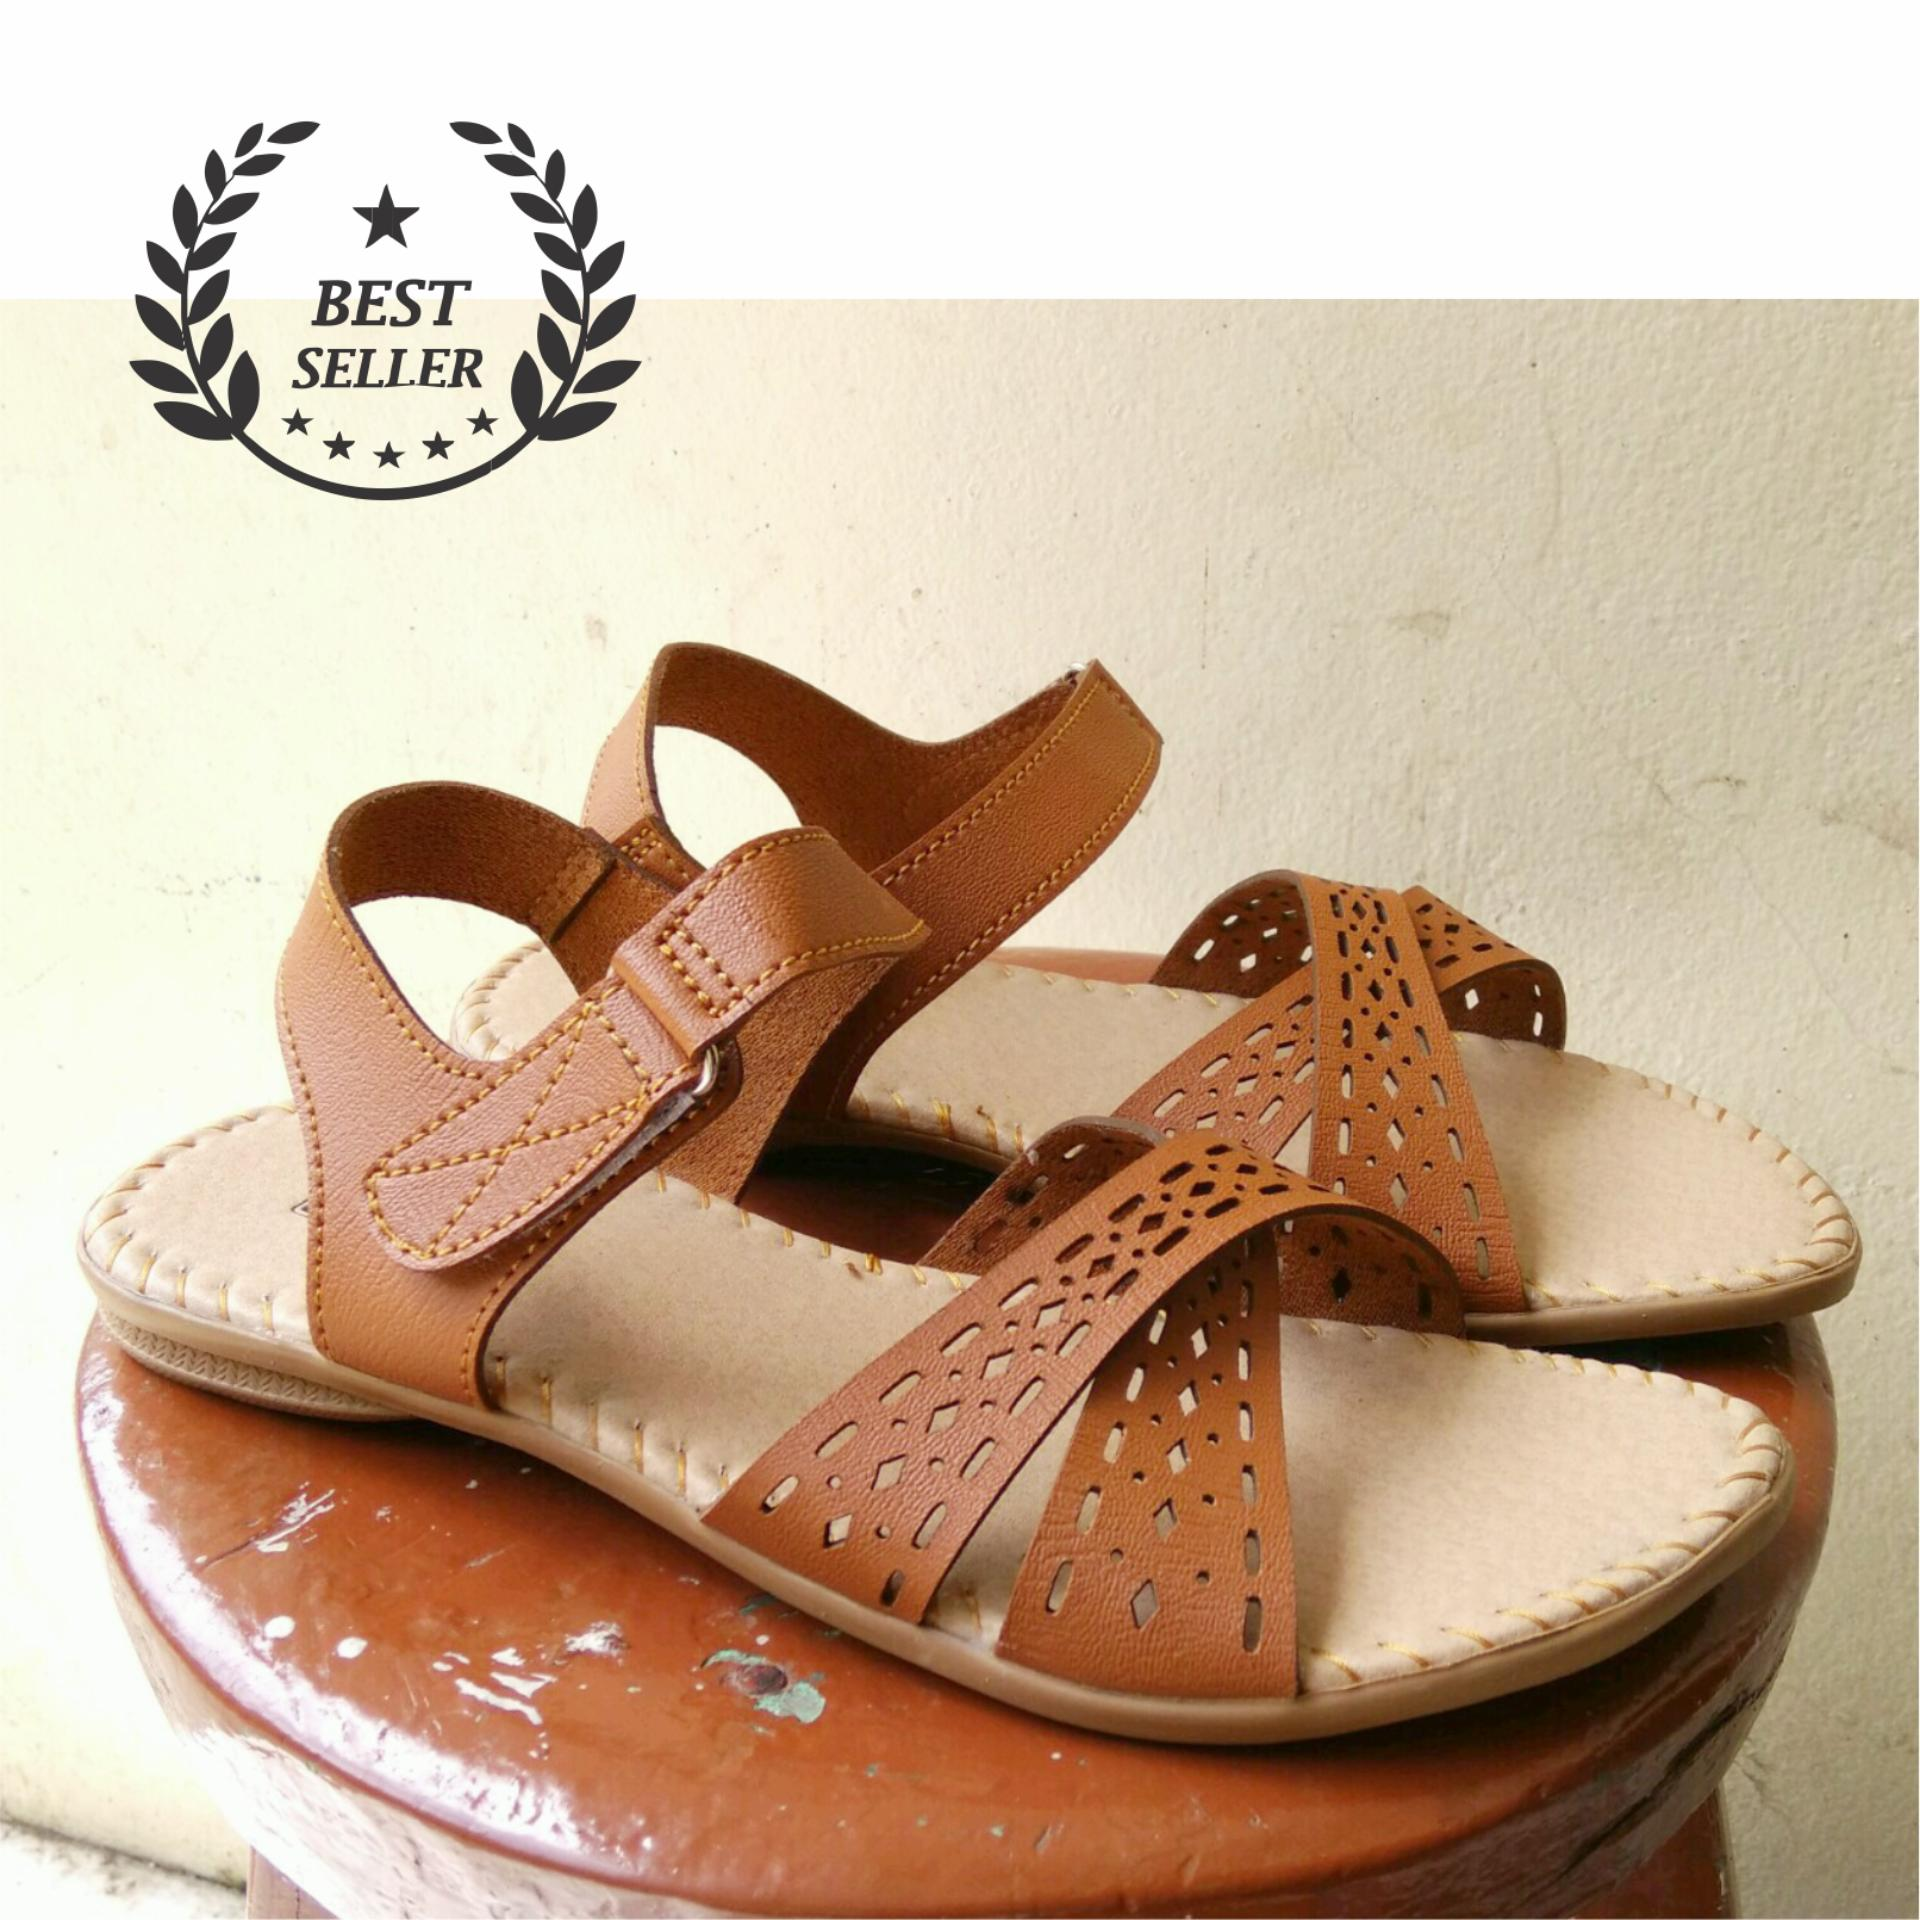 Promo Sandal Wanita Kadonik Laser Cut Leather Type Jingga Best Seller Kadonik Terbaru